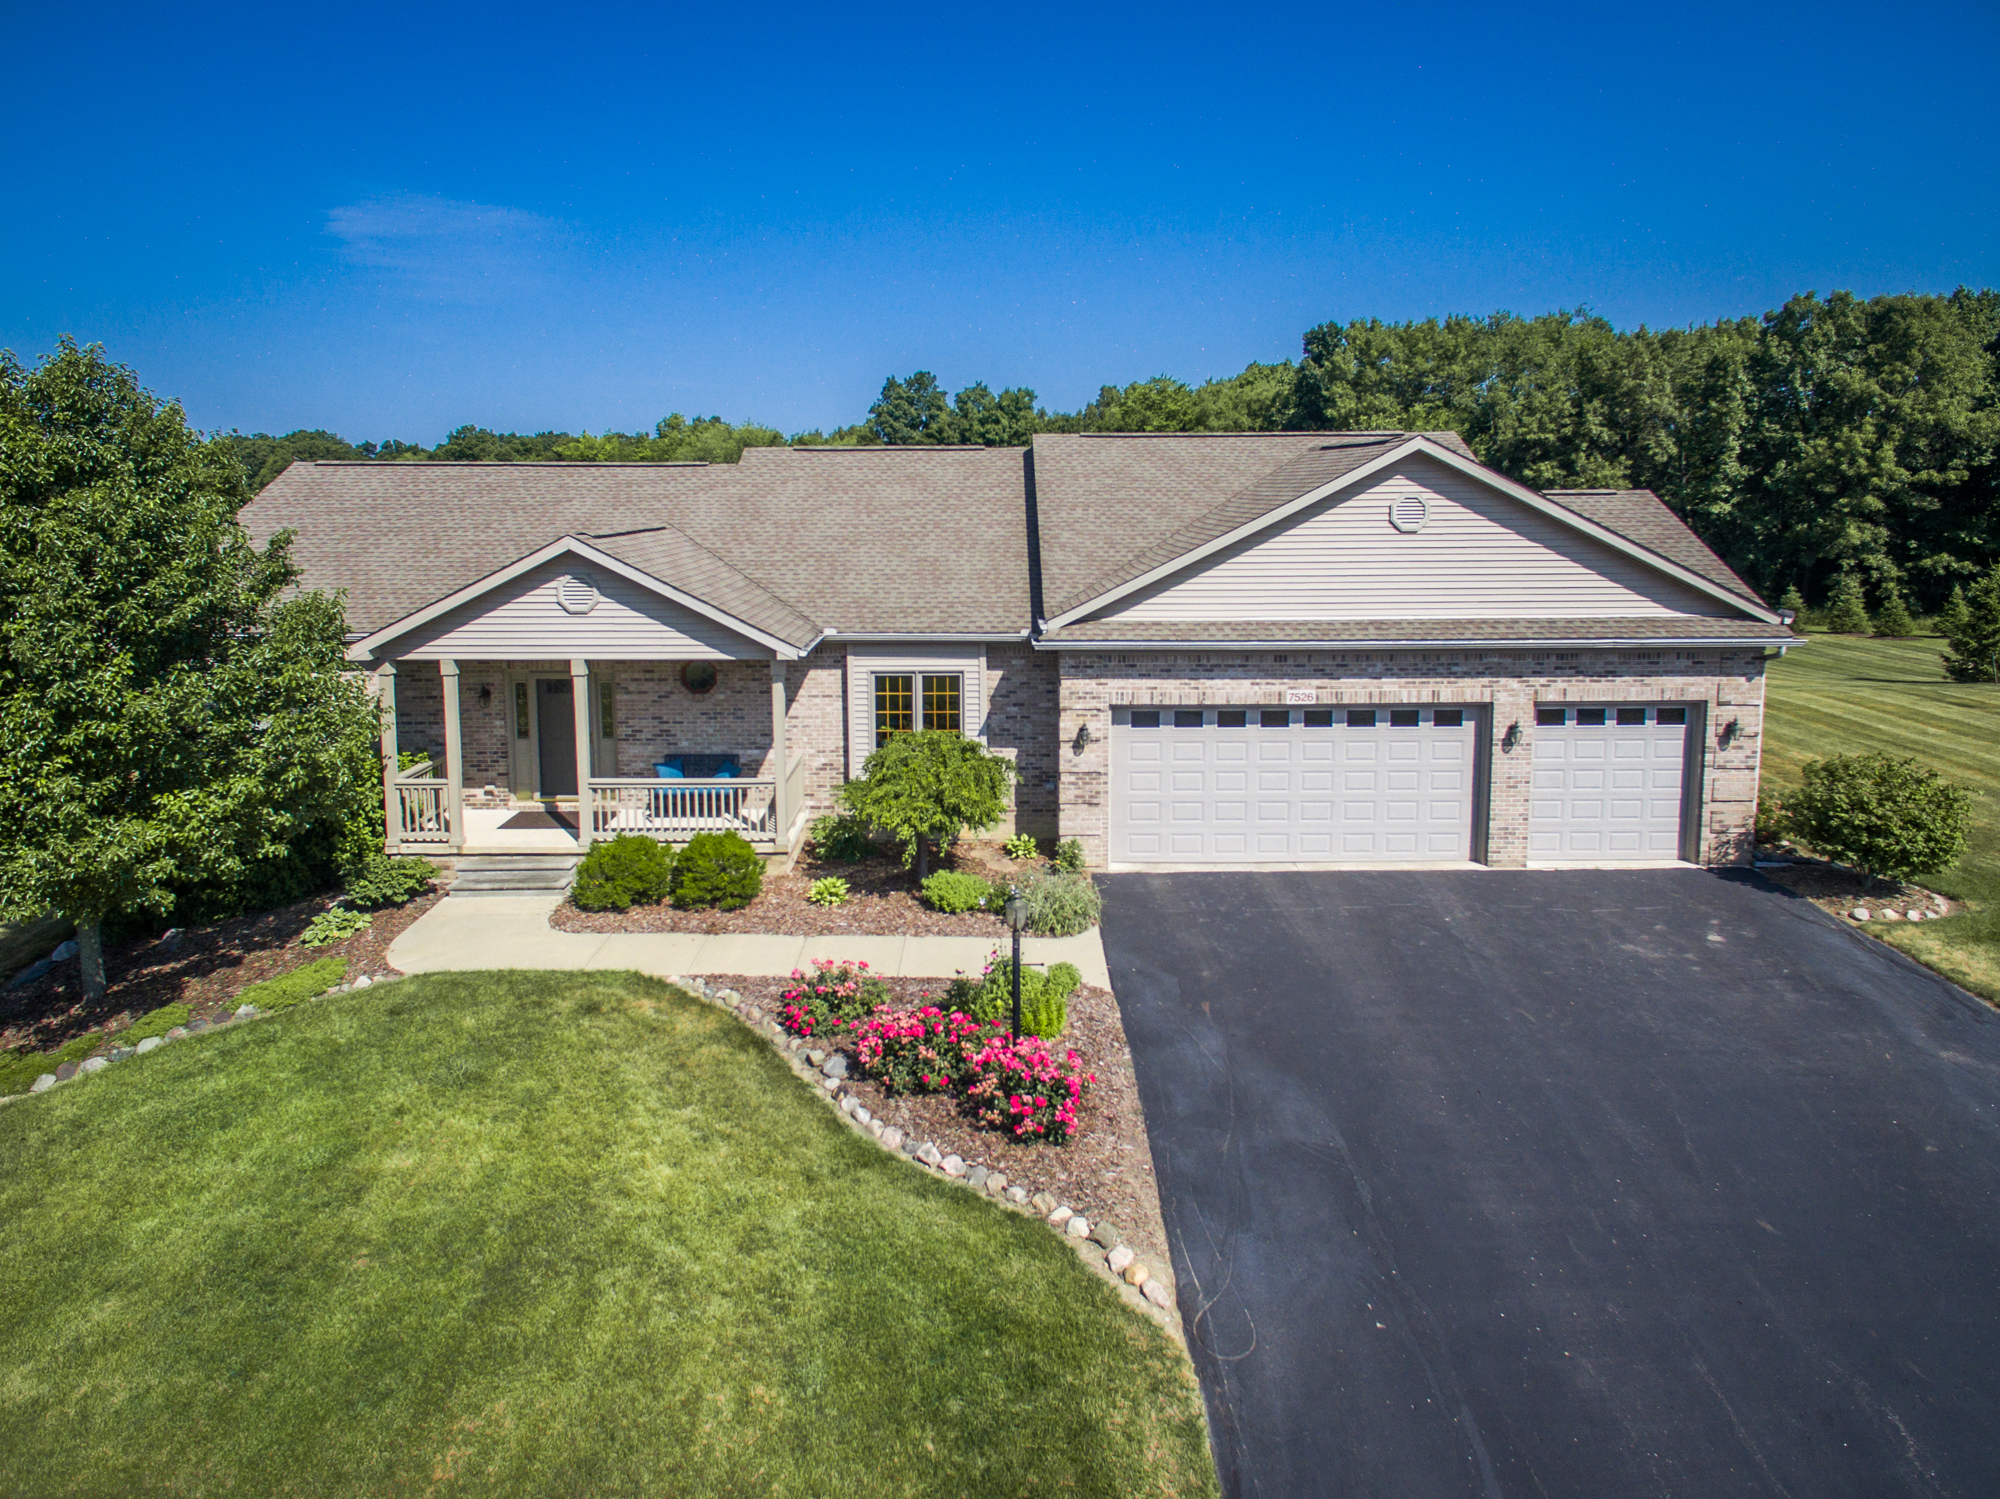 Summer Breeze, Howell - $370,000   DOM 84 / Sold for 95% of asking price / 22 Showings